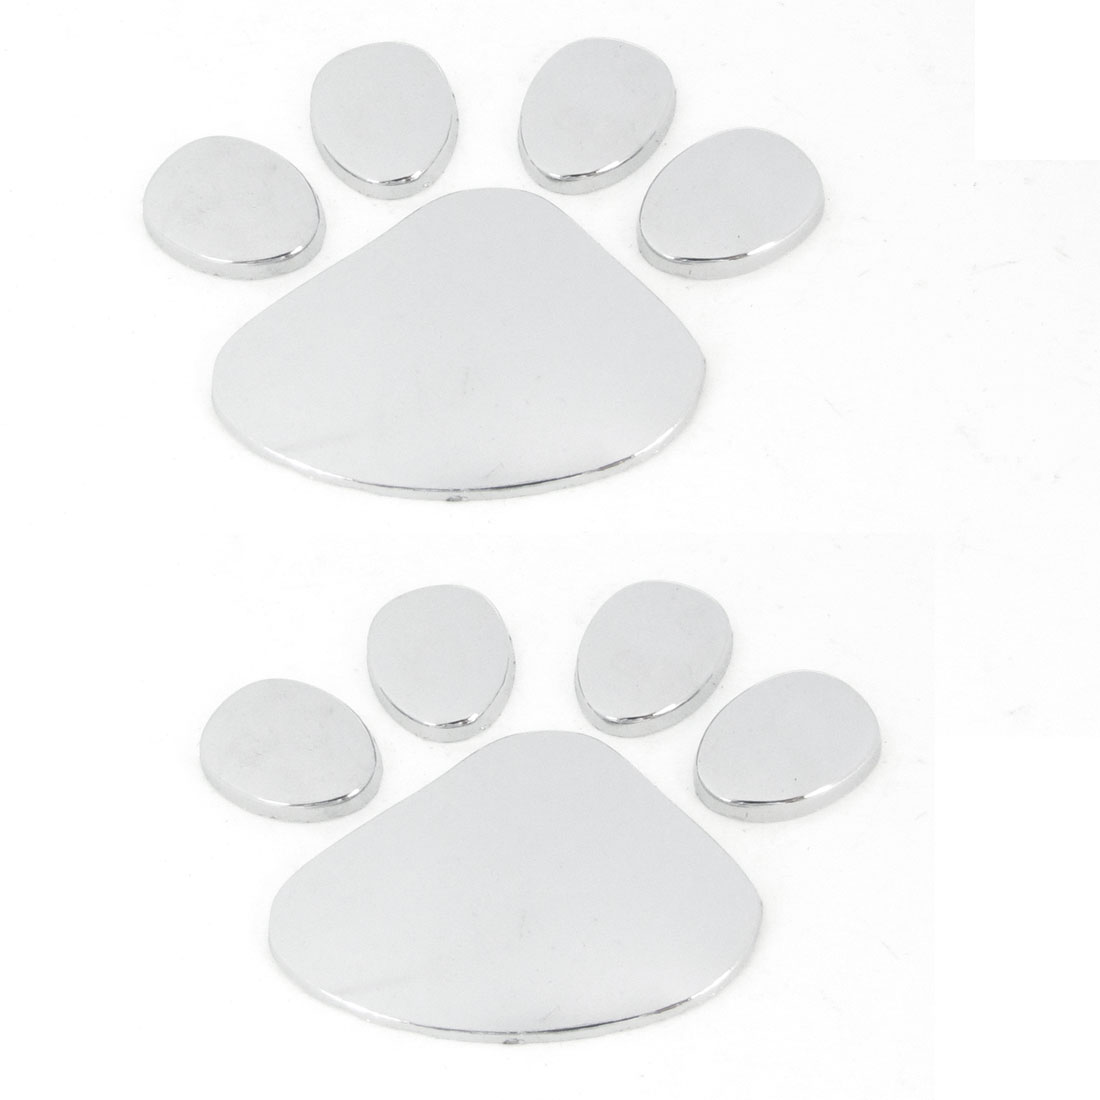 2 Pcs Silver Tone Dog Footprint Shape Metal Sticker for Auto Car